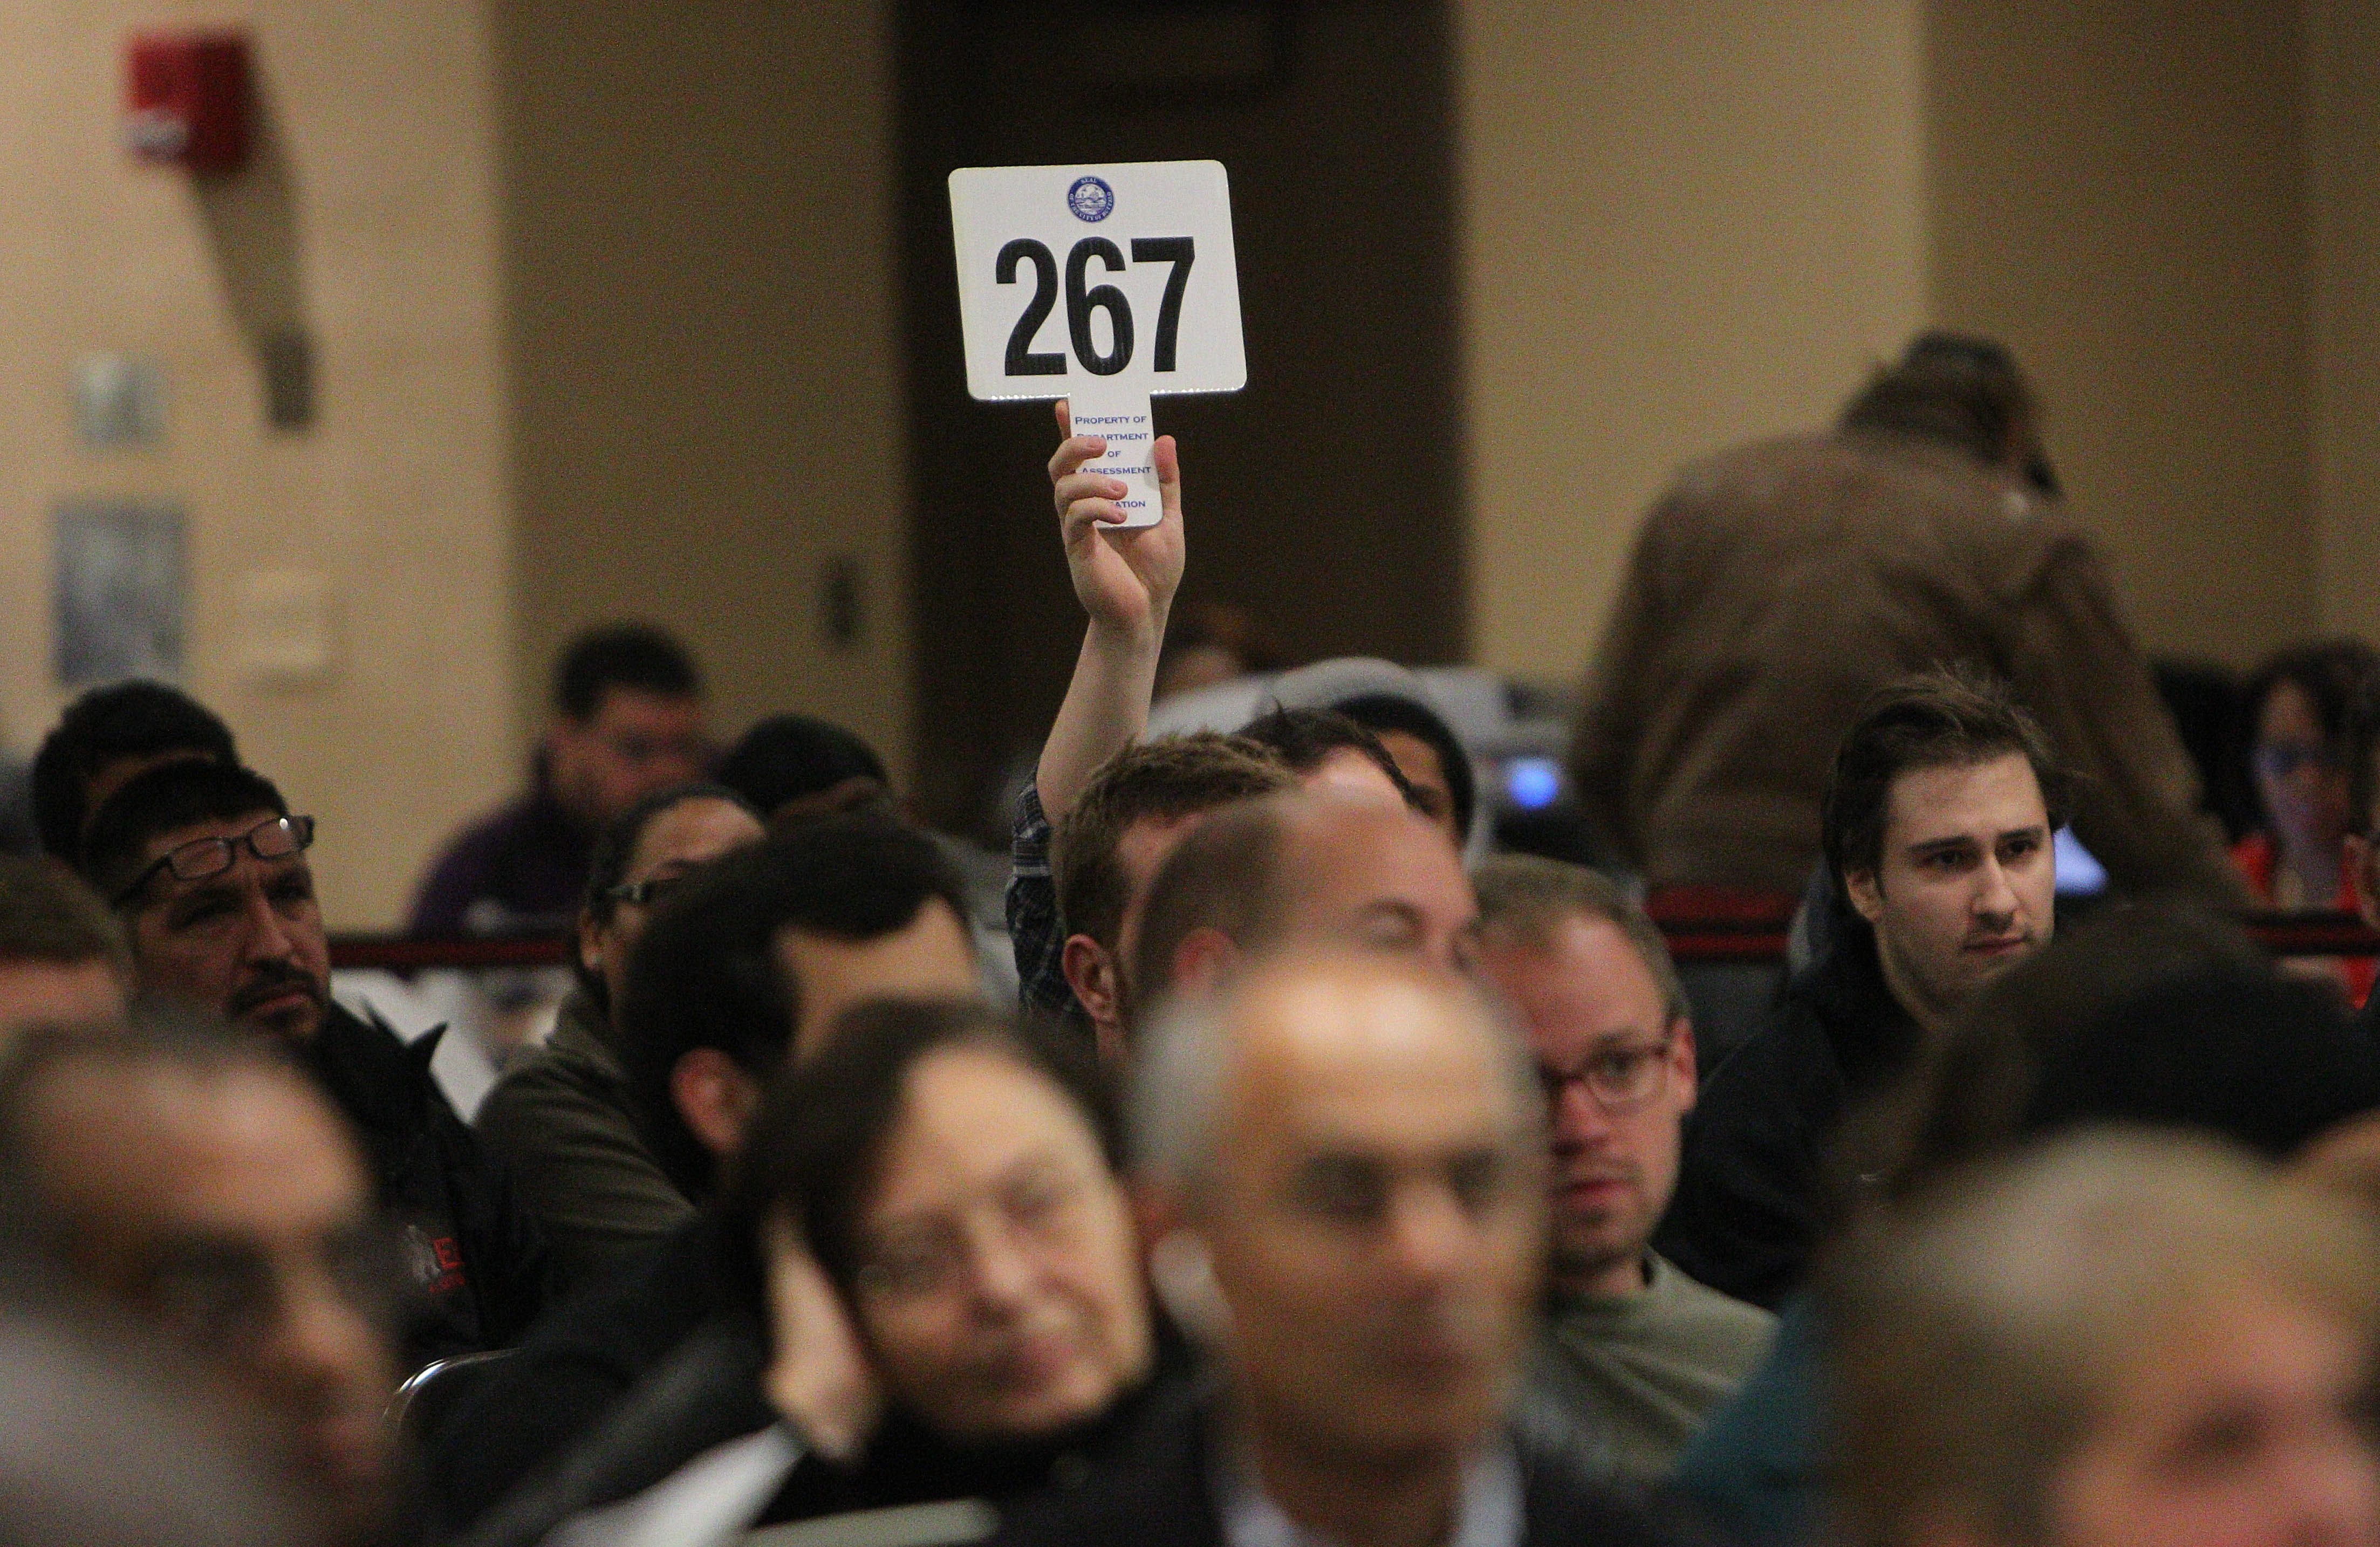 Bidder 267 is one of hundreds who turned out for the city's property auction.